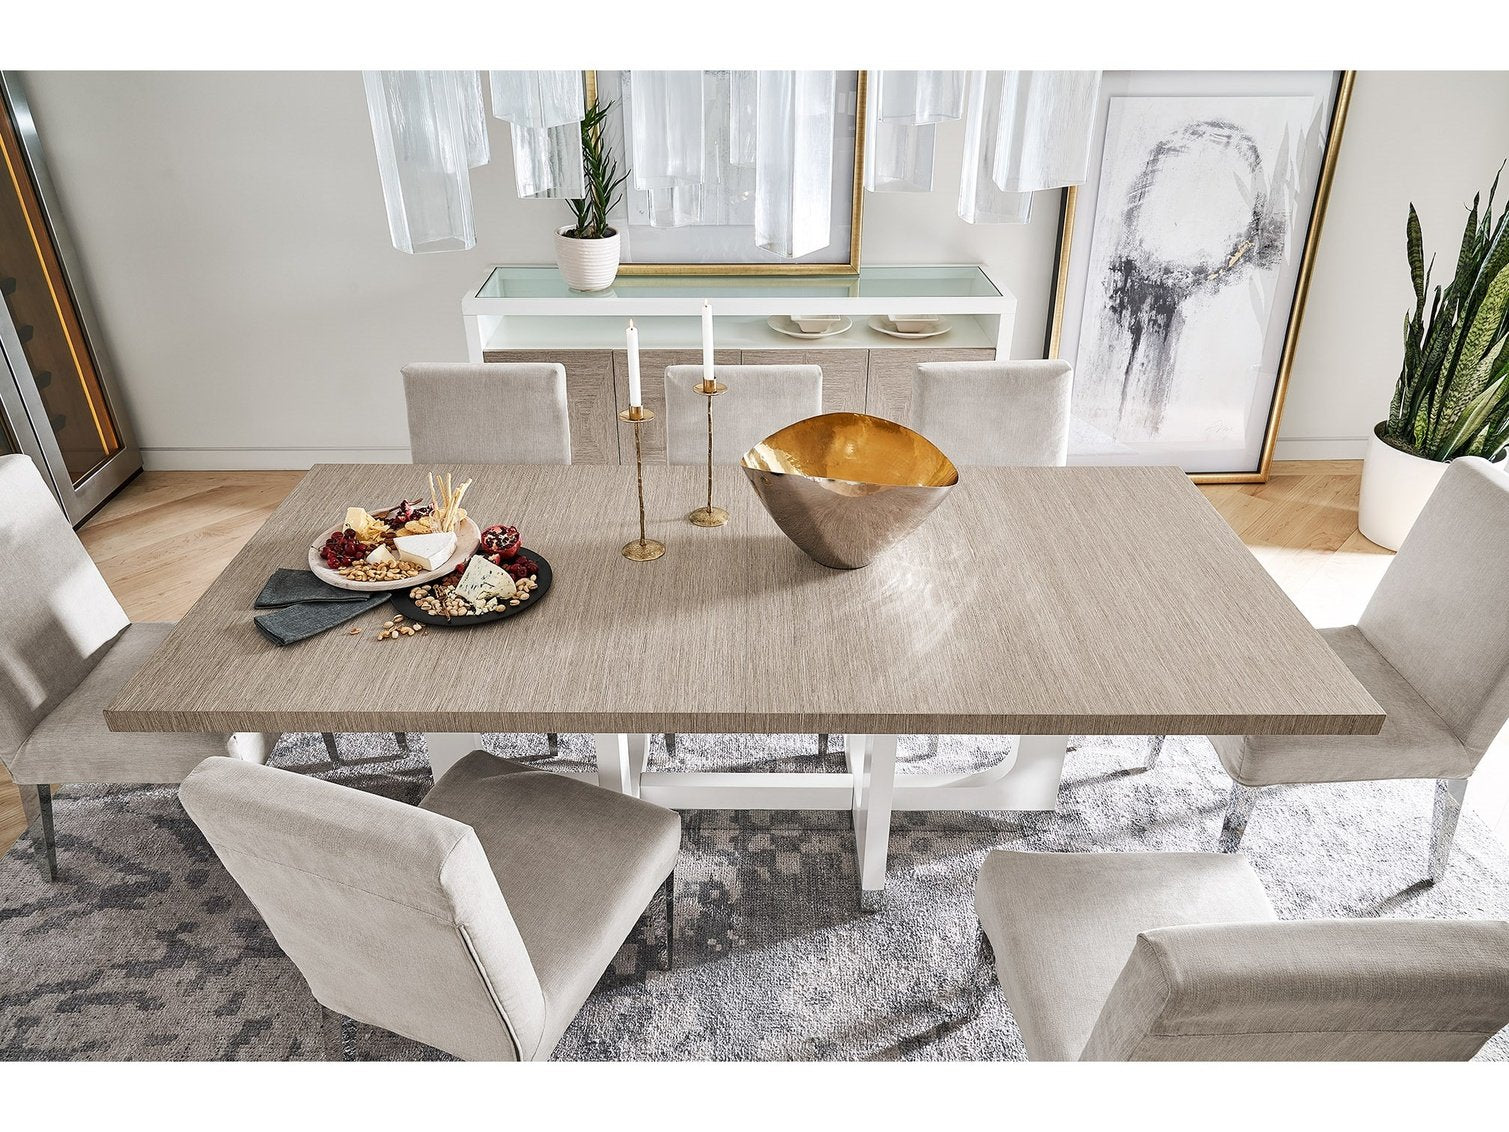 MODERN MARLEY DINING TABLE